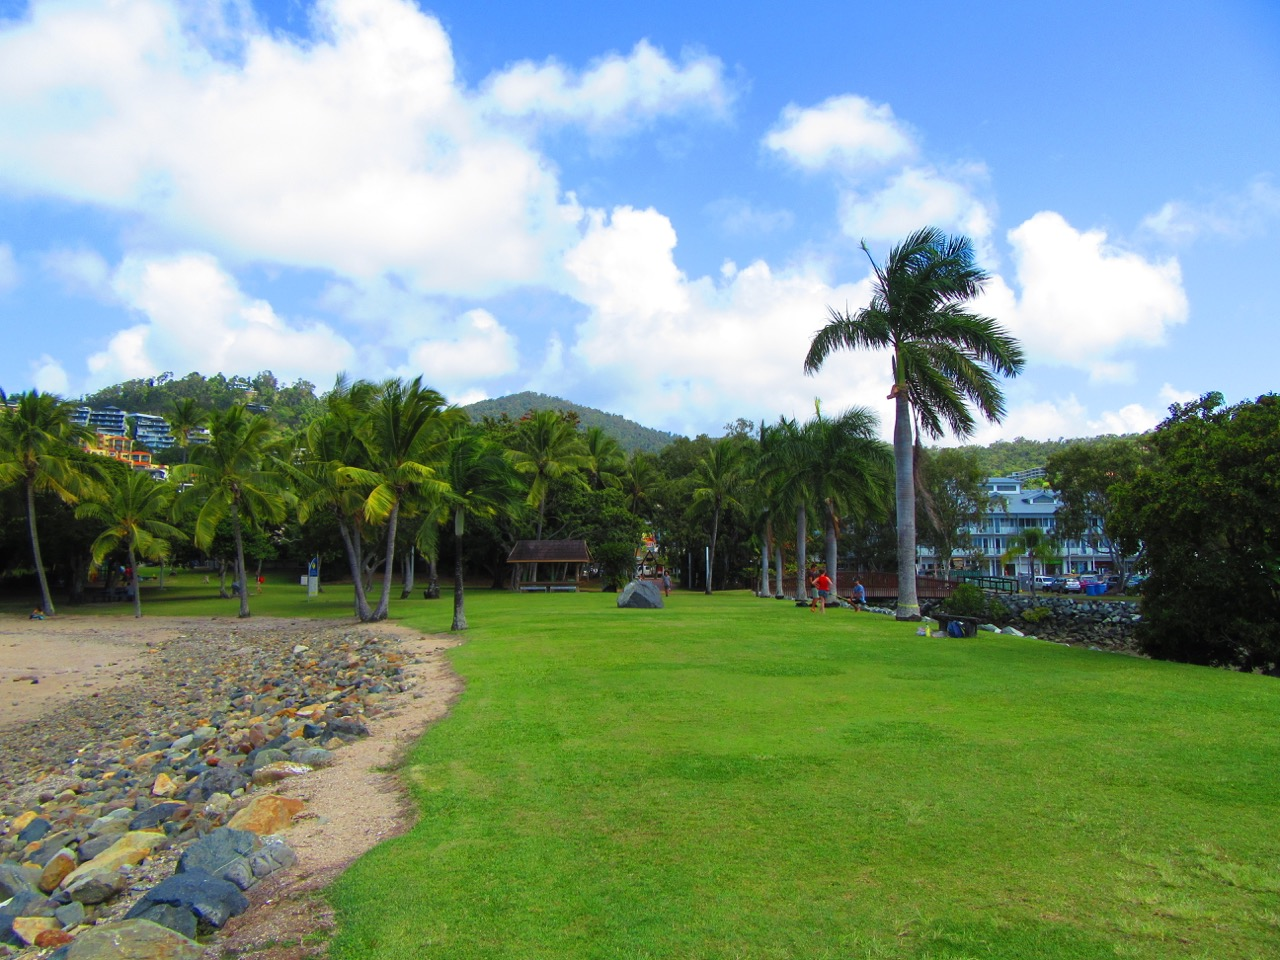 One of the beautiful parks in Airlie Beach